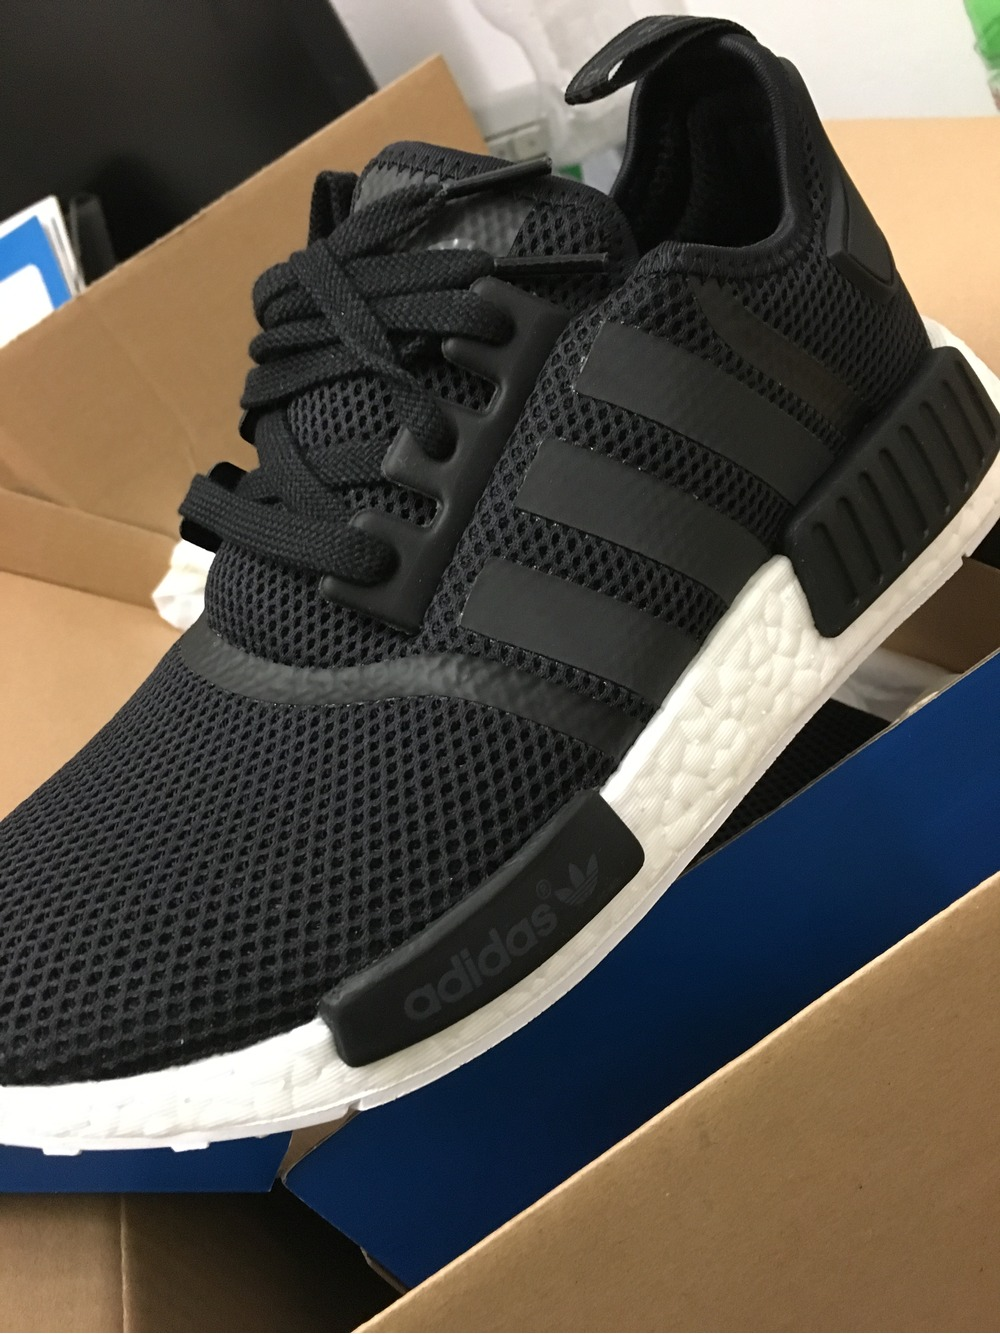 866f13705 New Adidas NMD R1 Black Reflective Grey White 3M Champs